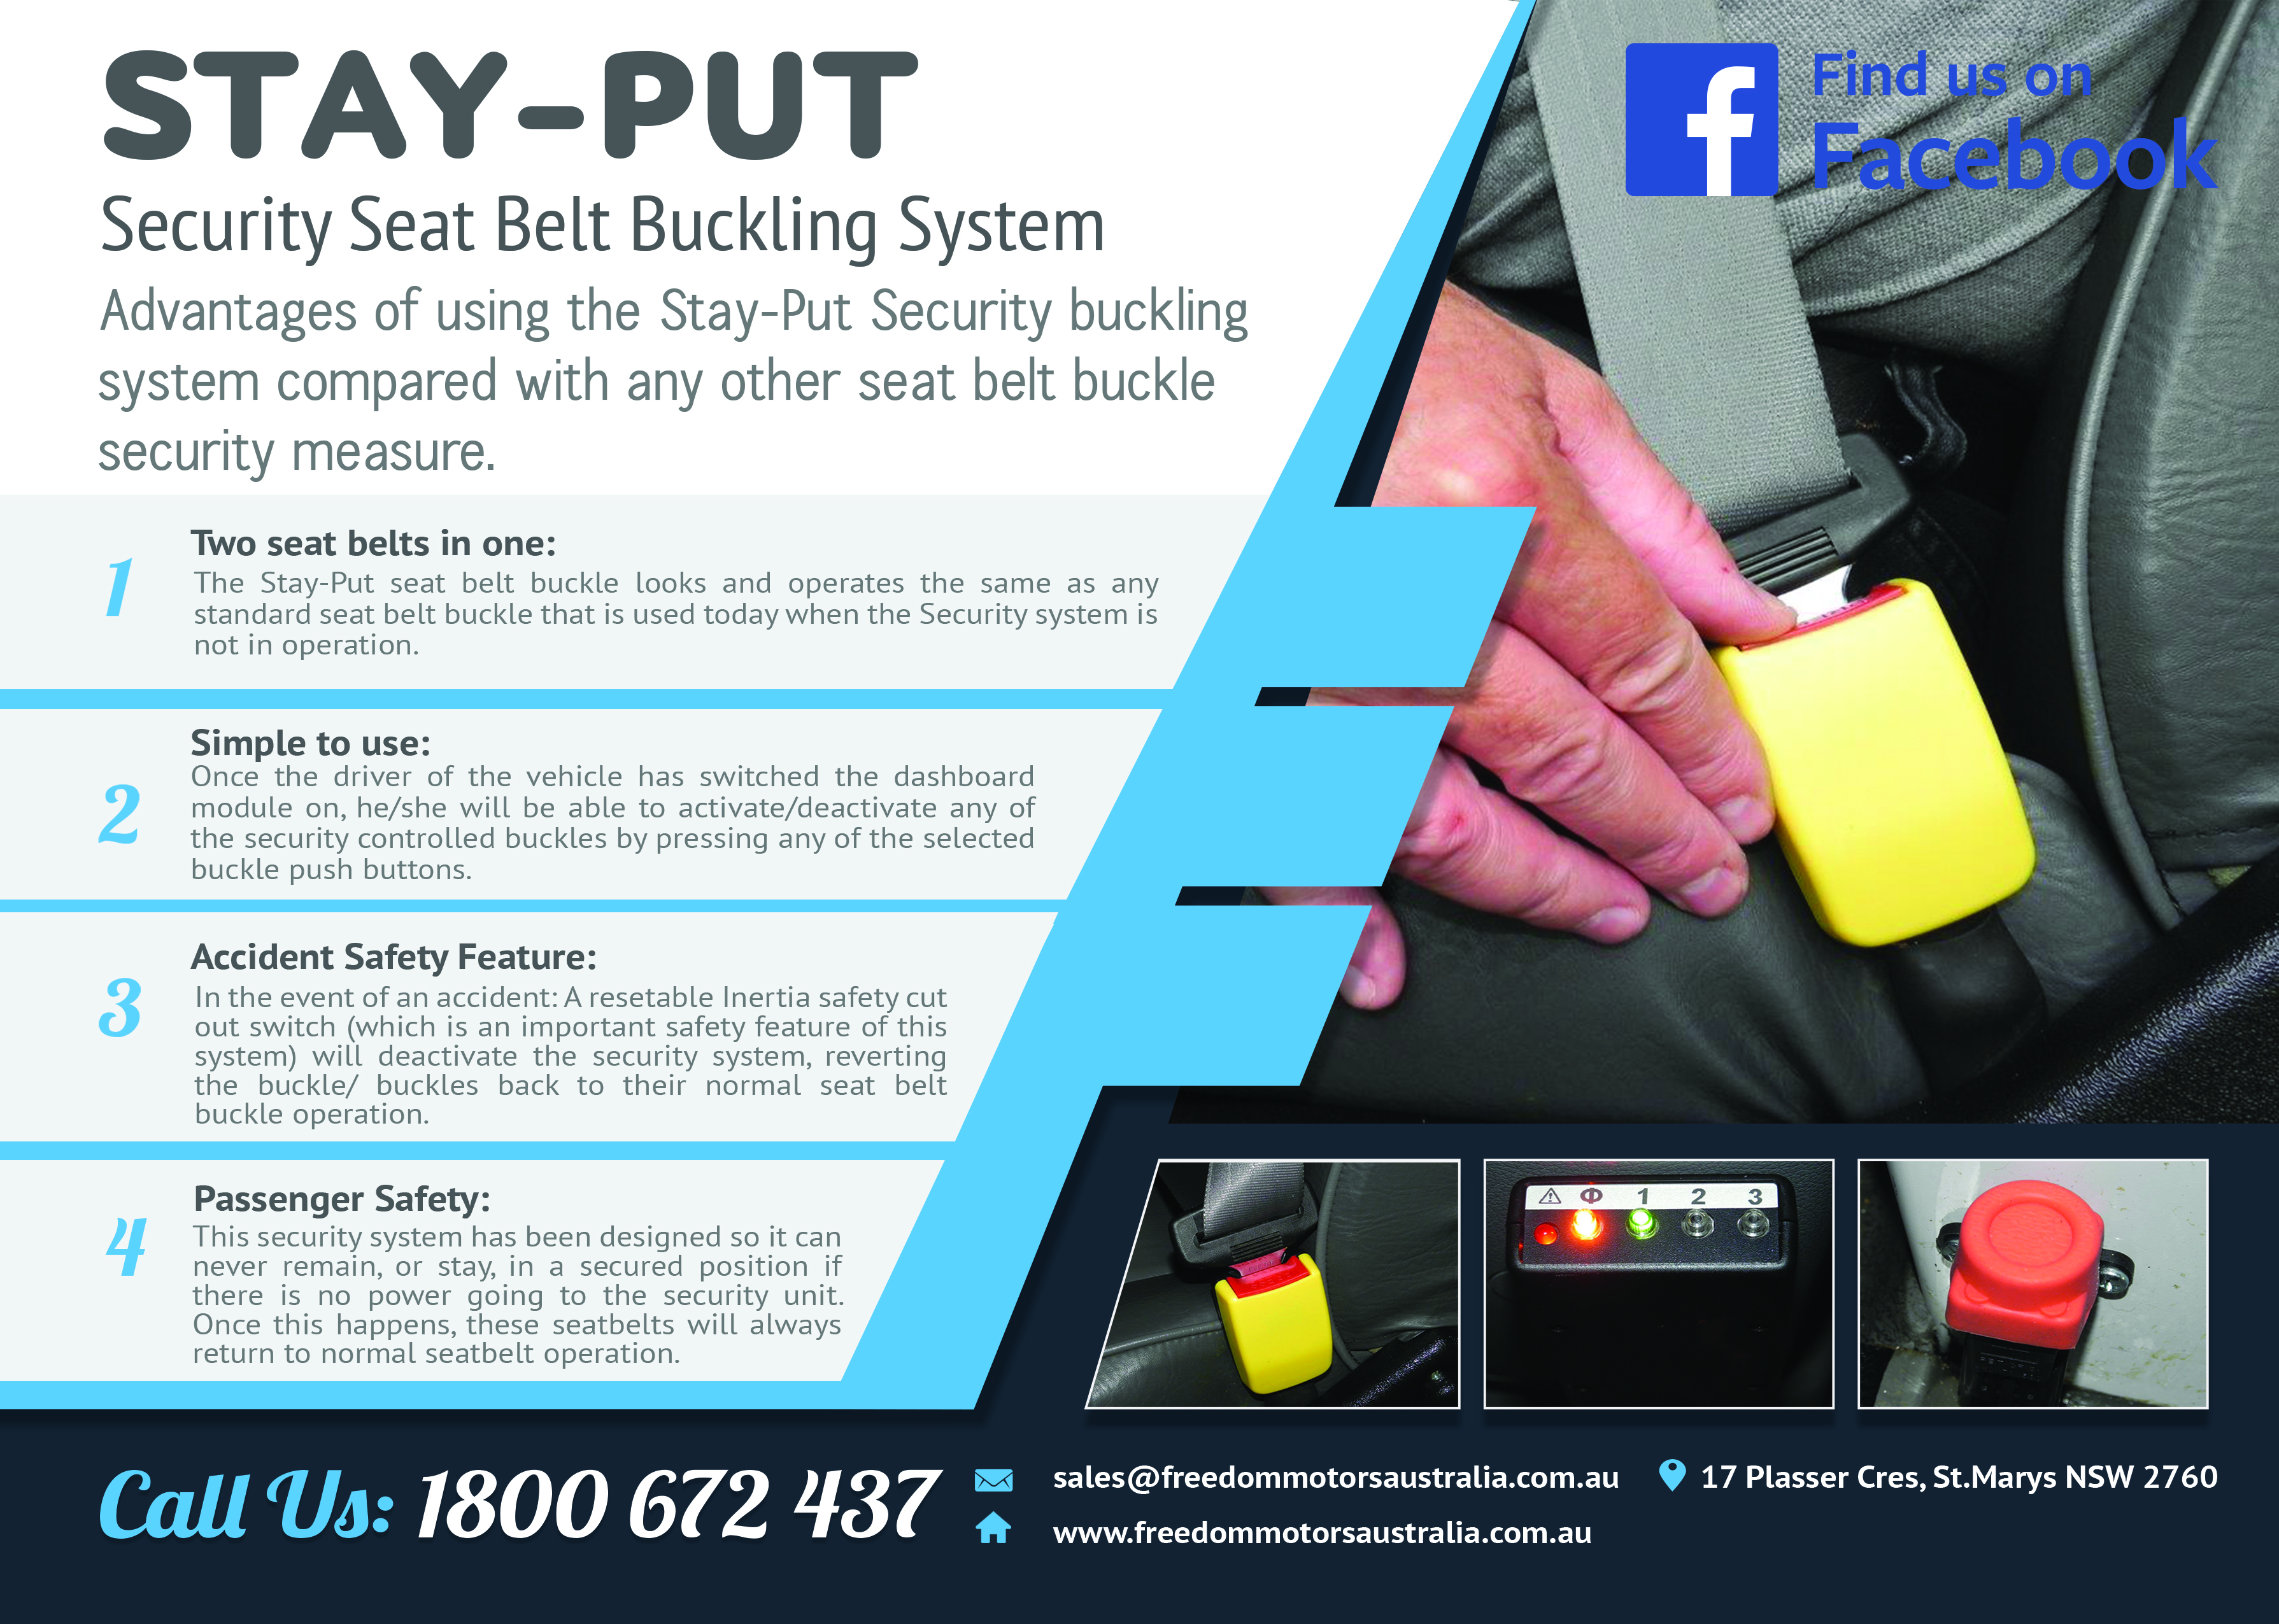 Access Vehicles Australia specialise in Handicap Vans, Disability Buses, Wheelchair Access Vehicle Conversions | STAY-PUT Security Seat Belt Buckling System - ../../dc/products/STAY_PUT_Security_Seat_Belt_Buckling_System.jpg